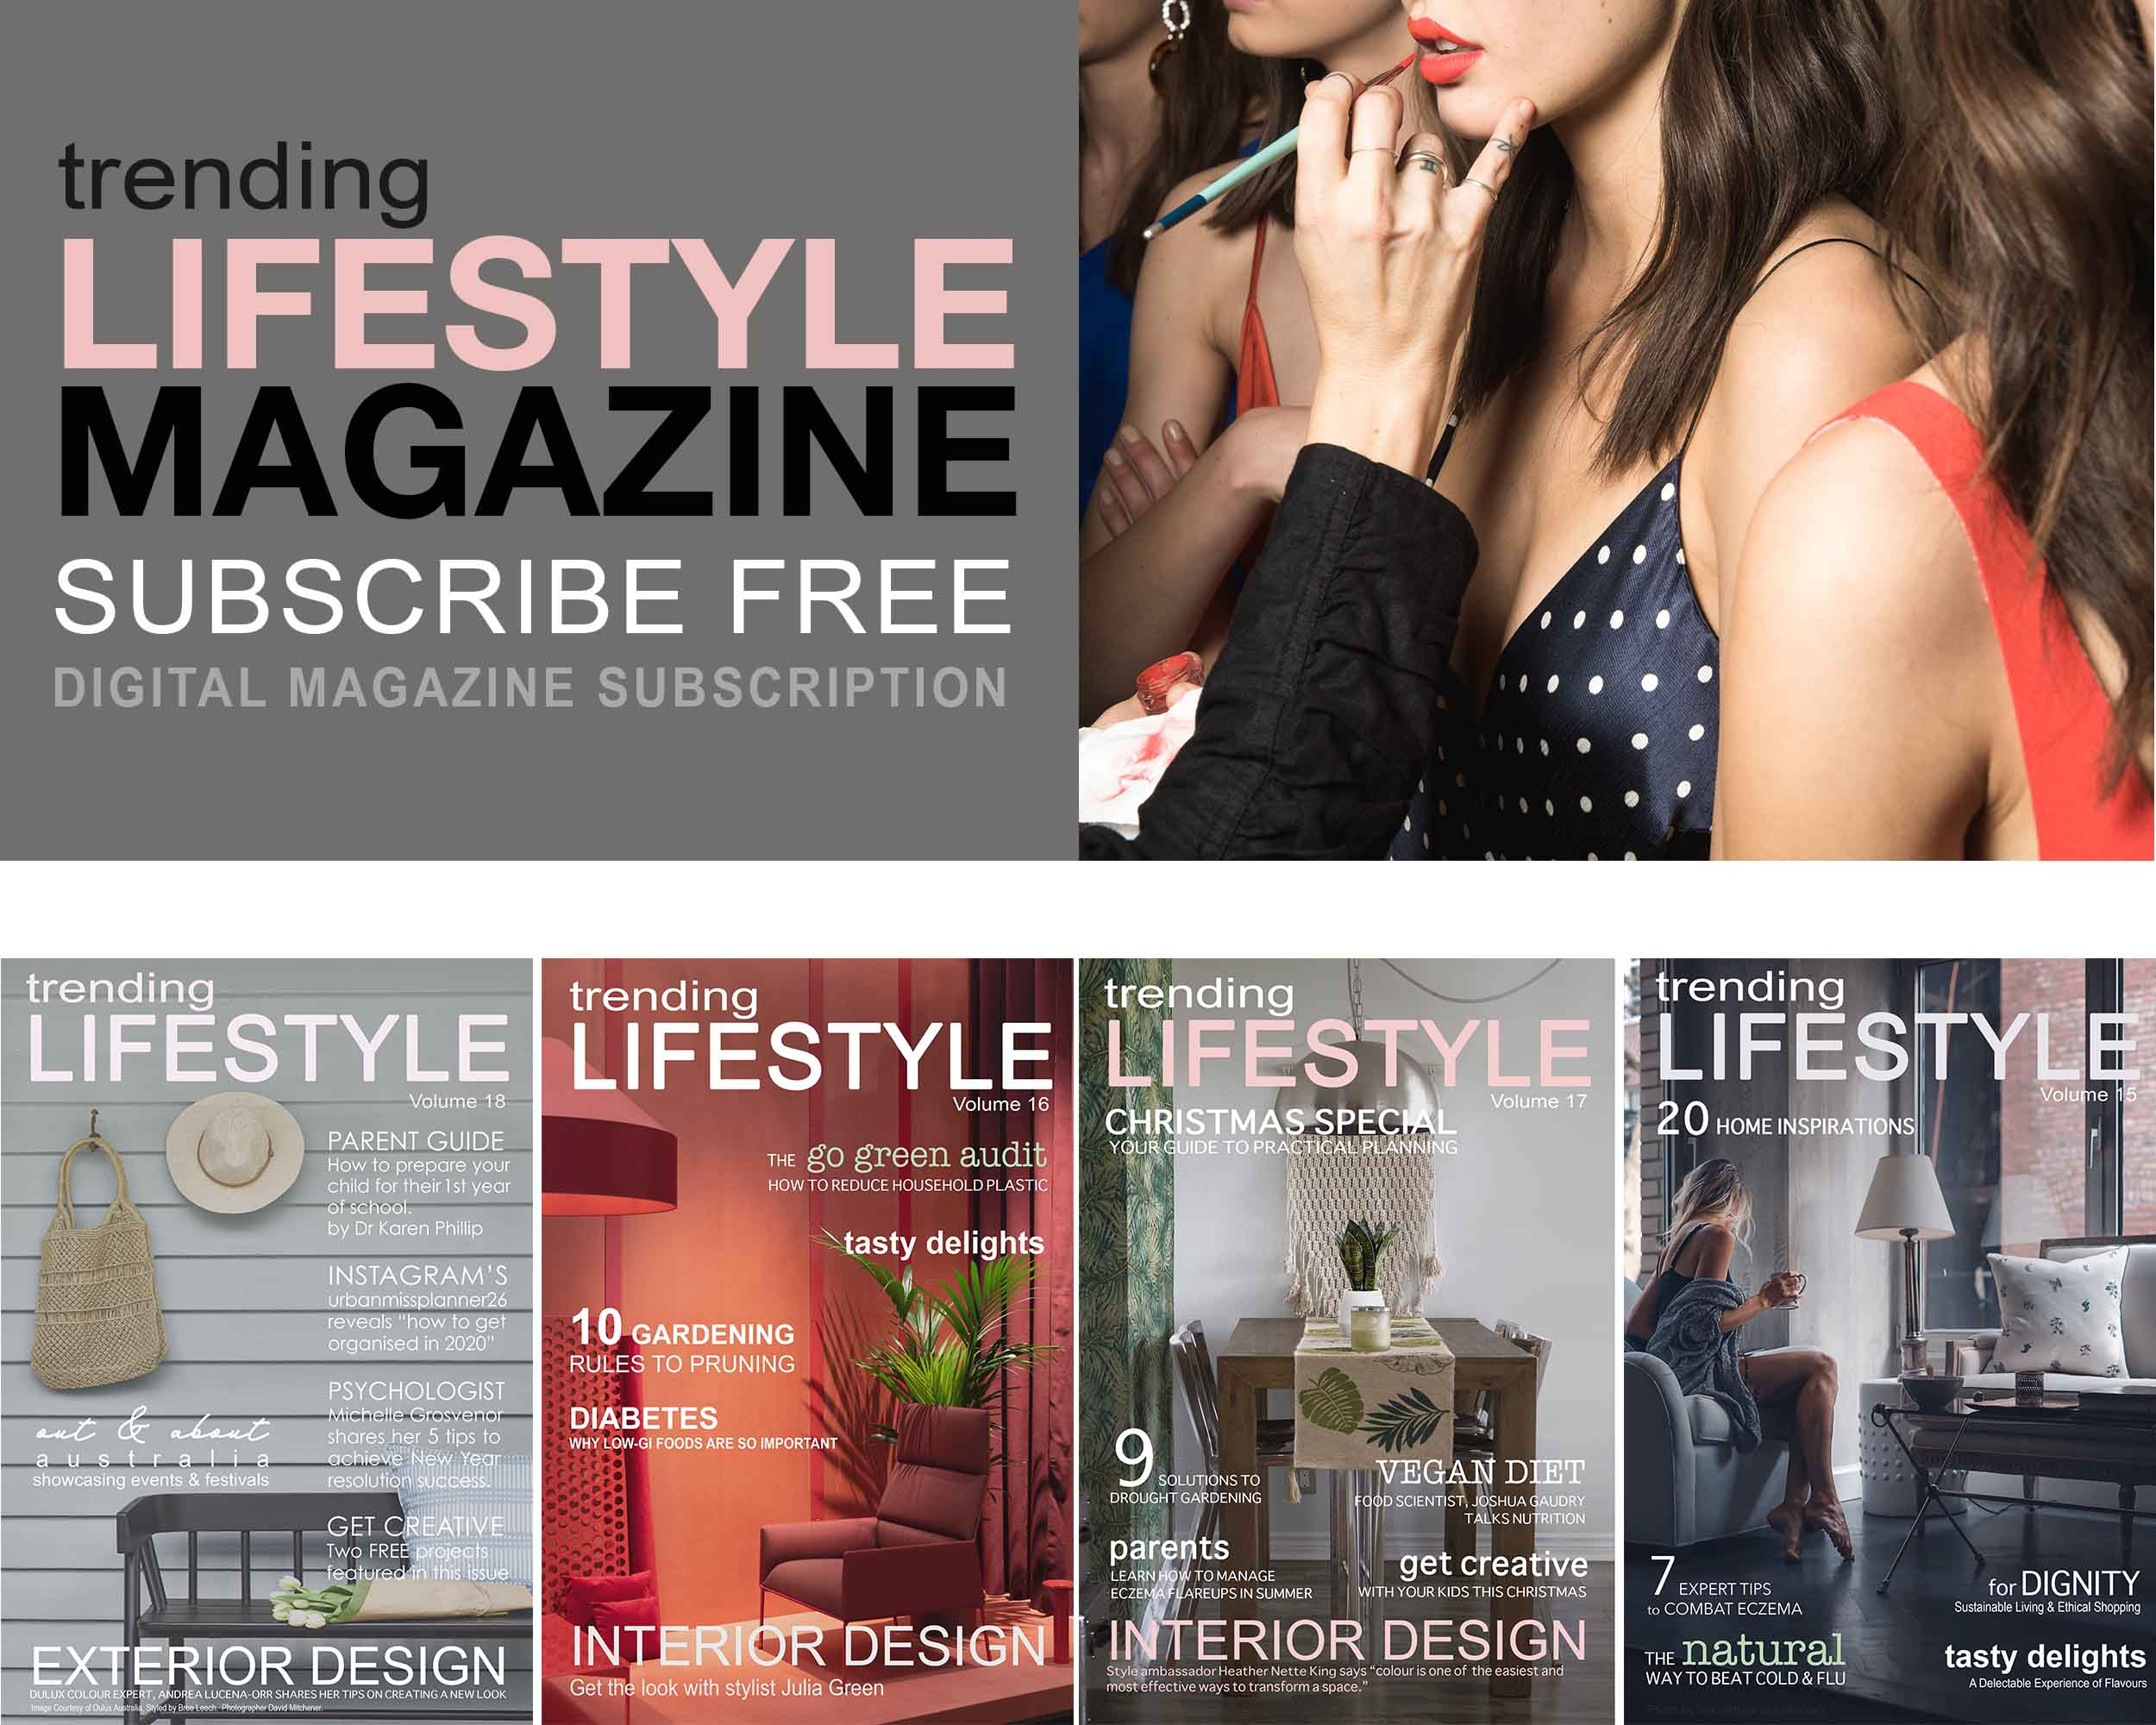 Trending Lifestyle Magazine Health & Beauty